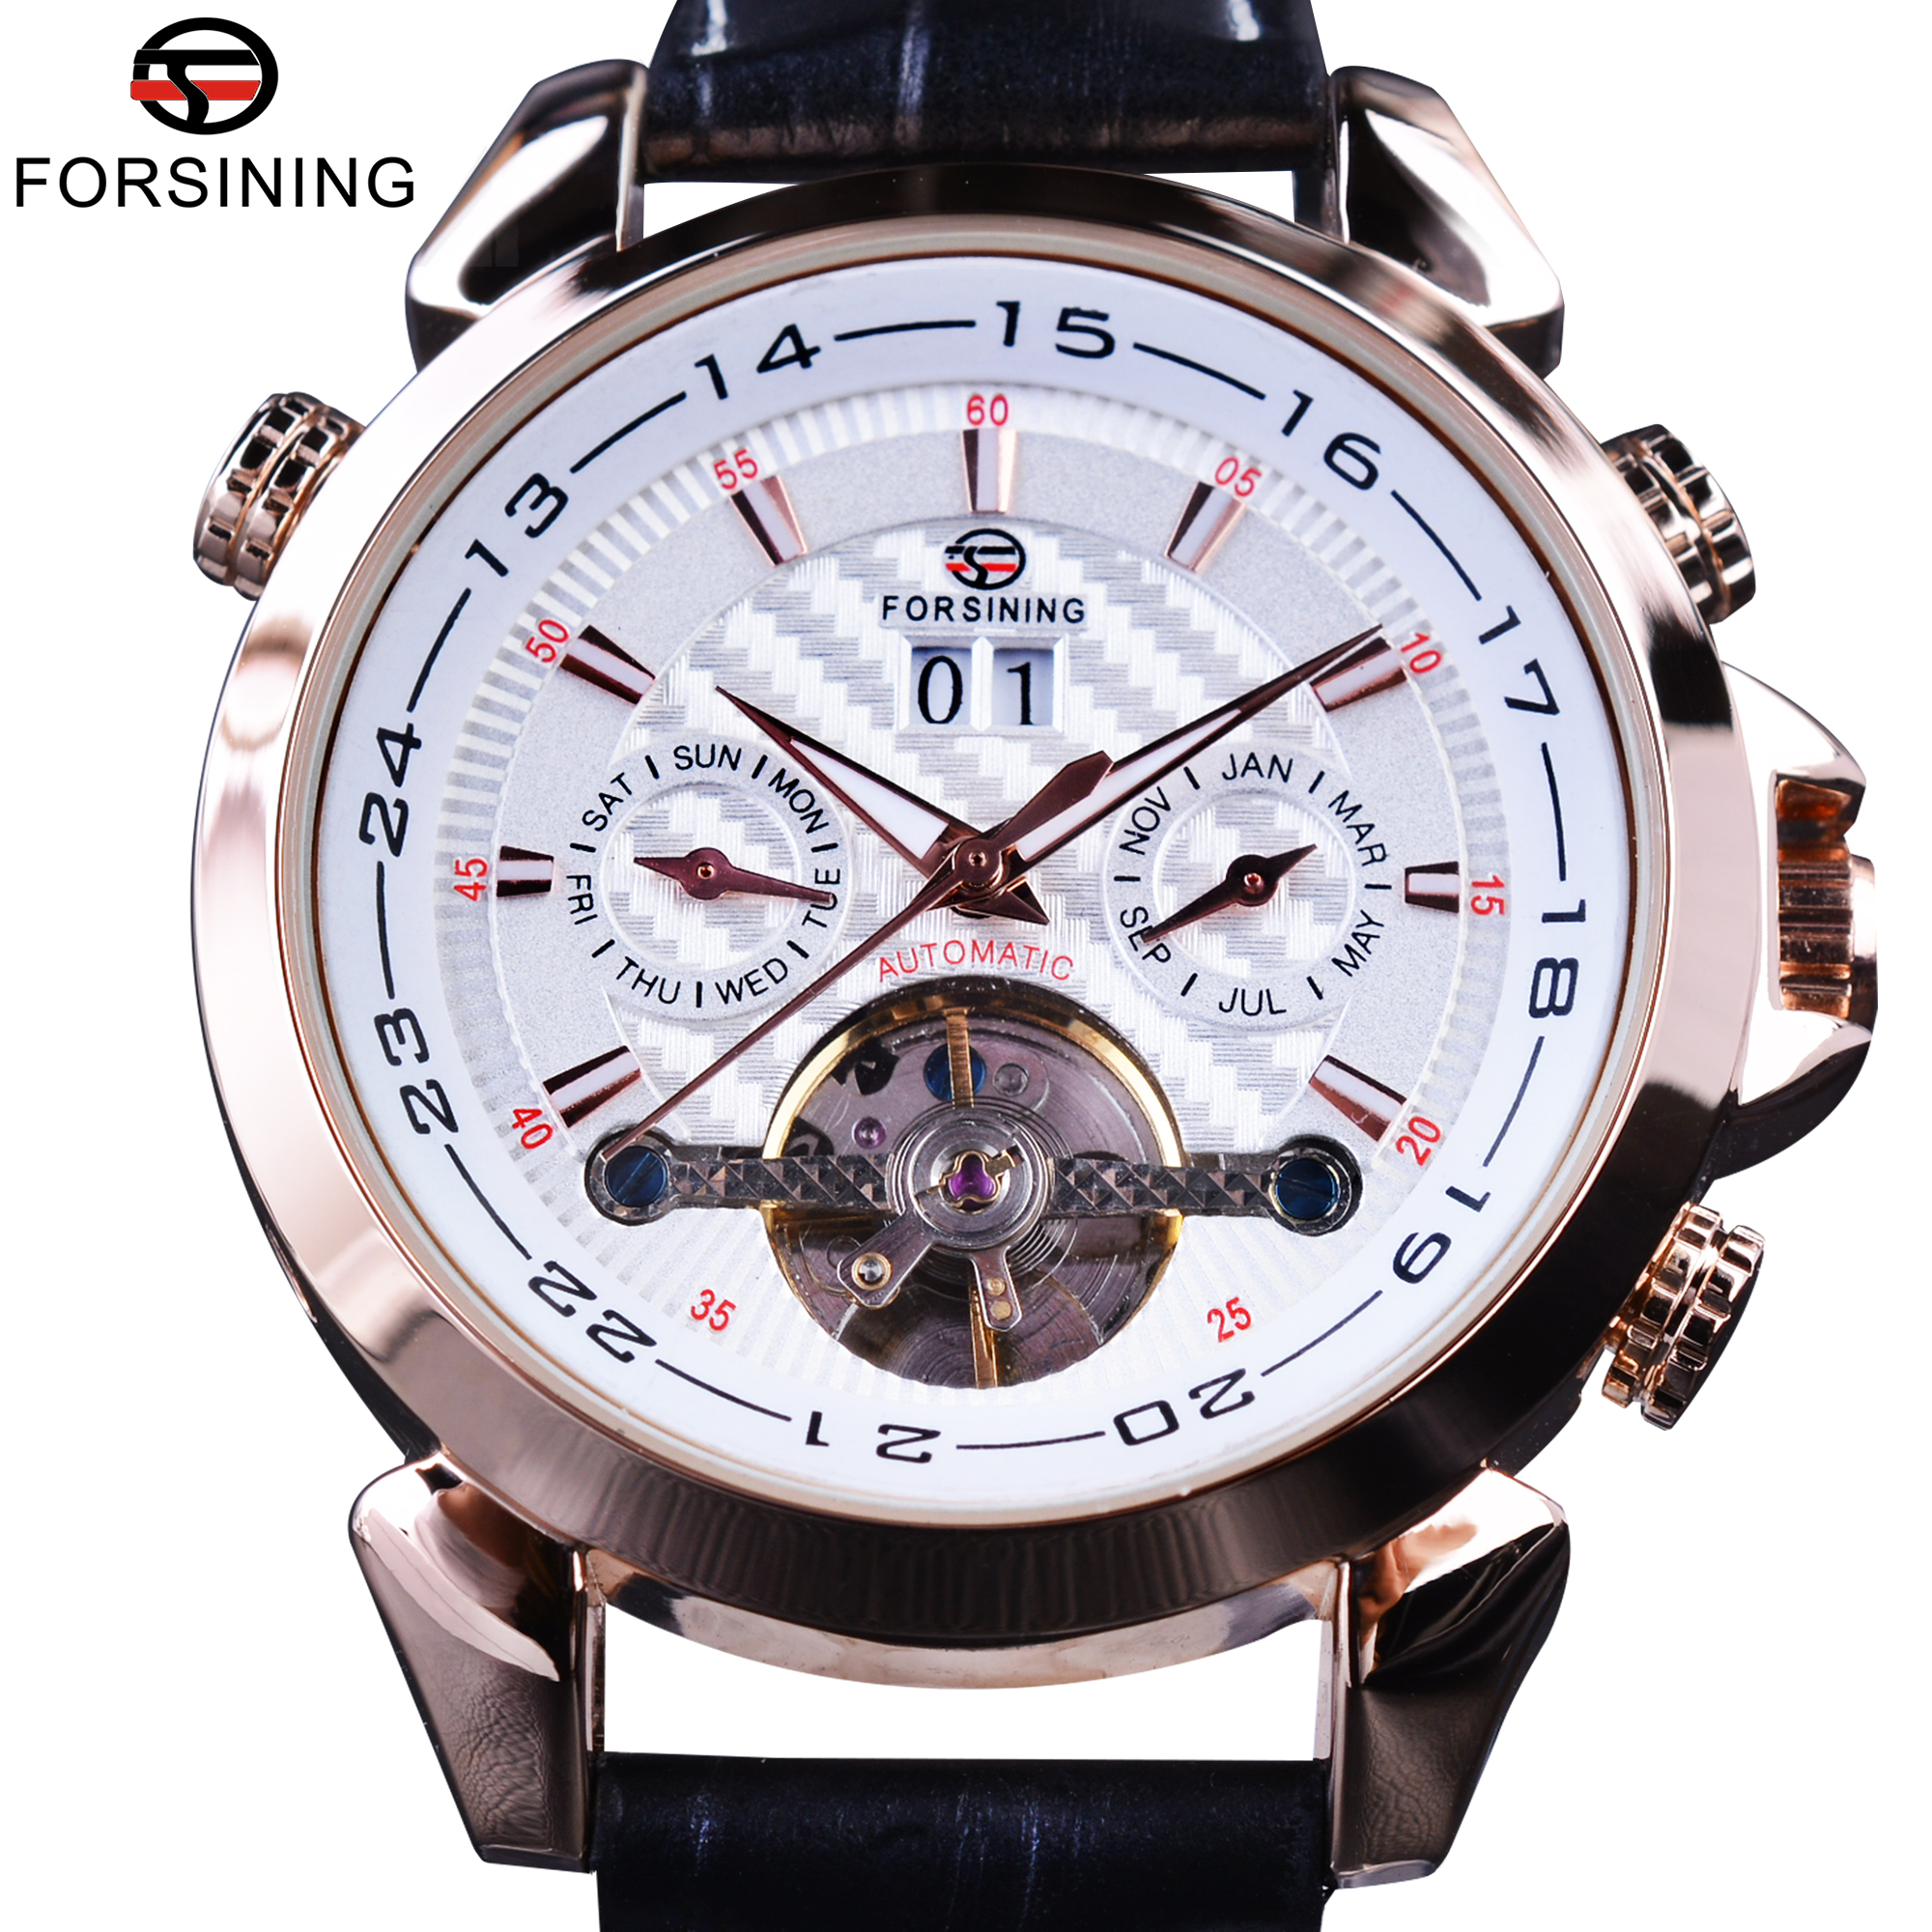 new at pin mens collection classy place timepieces buy connaught exclusive having delhi rado watches fashionable luxury from boutique explicit